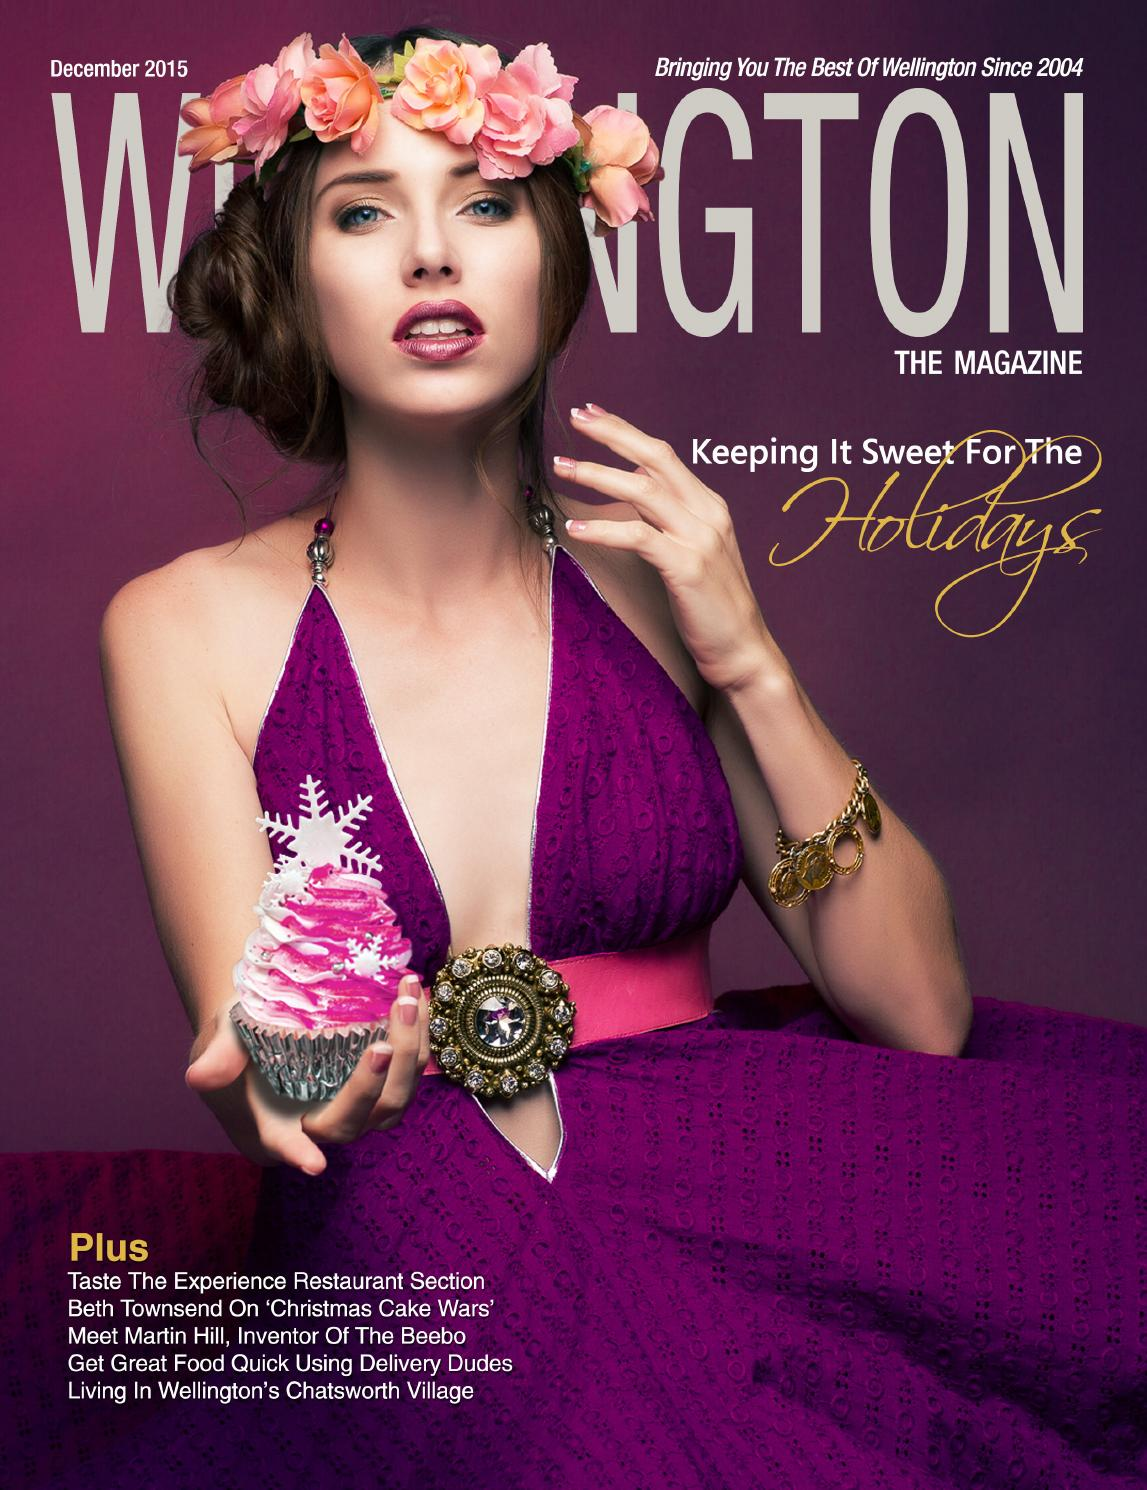 Wellington The Magazine December 2015 By Llc Lucky Baby Paci Kliper Pacifier Holder Lion Lb 3383 Issuu